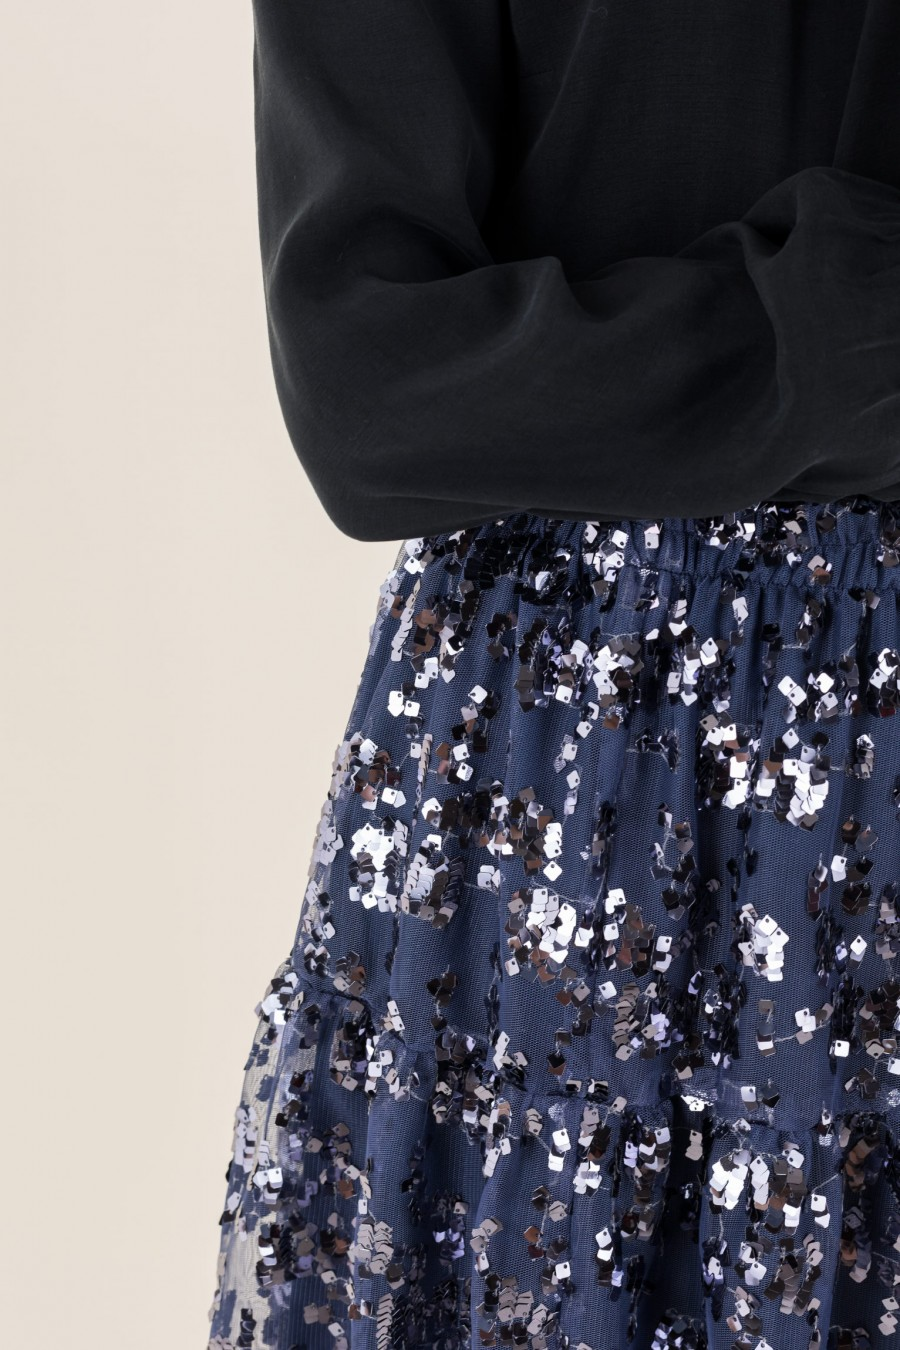 Tulle skirt with shiny blue sequins